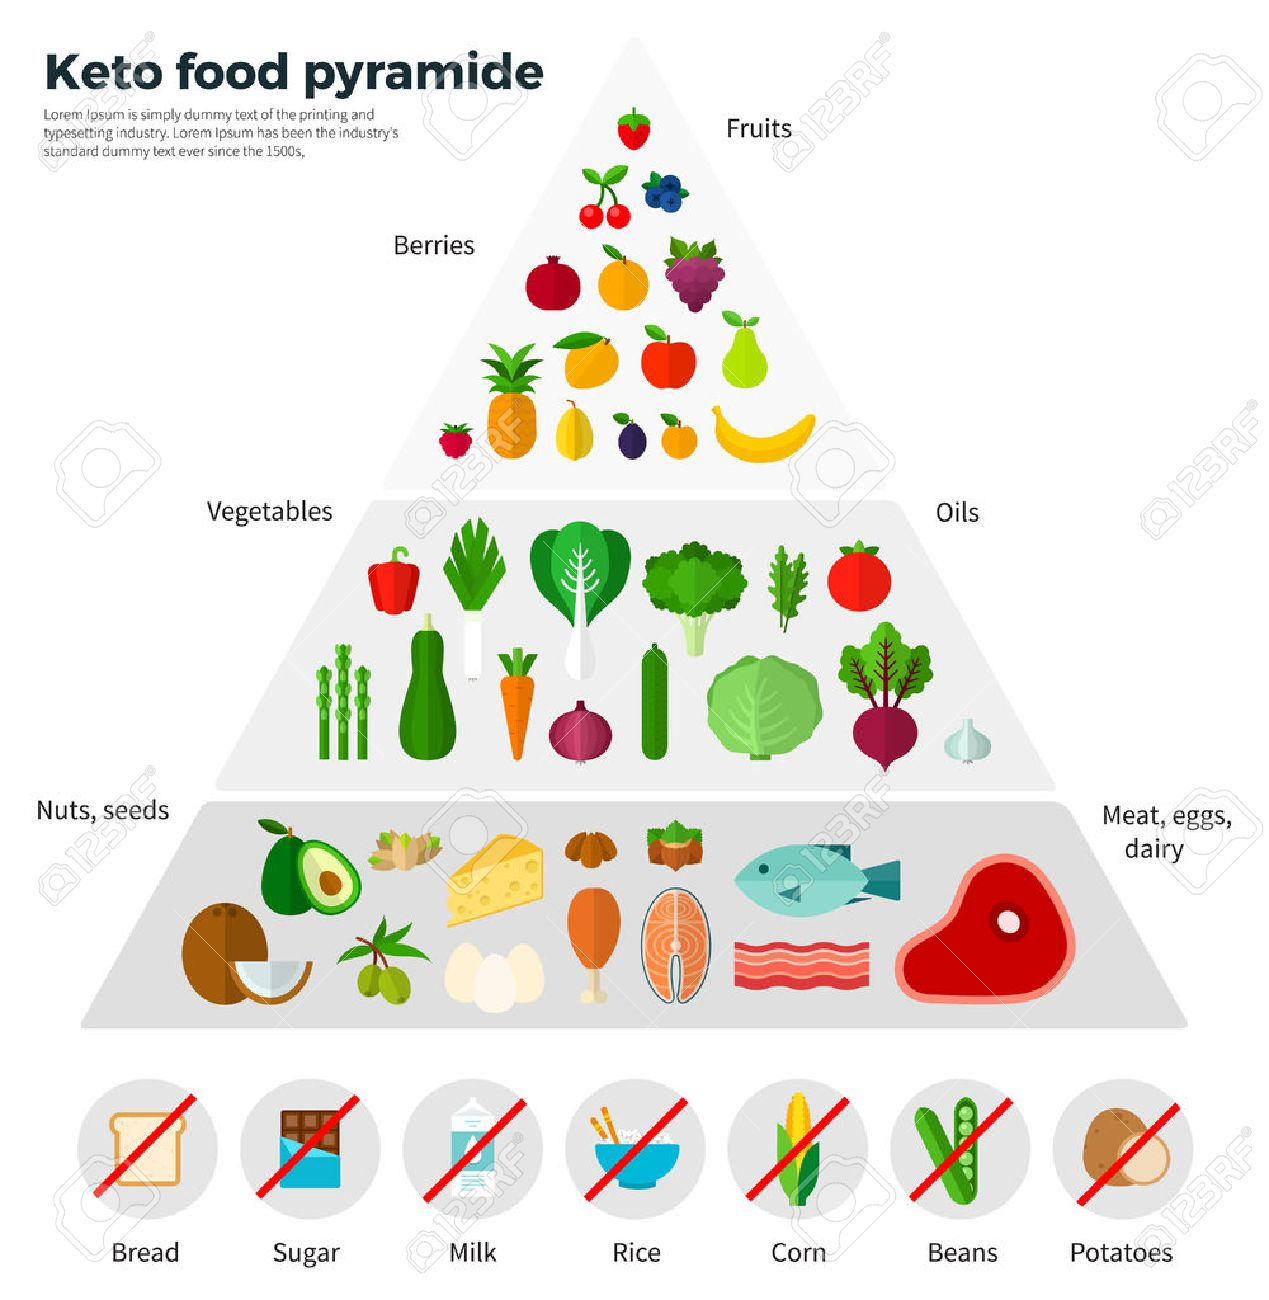 Healthy eating concept. Keto food pyramide. Fruits, berries, oils, nuts, seeds, meat, eggs, dairy. For website construction, mobile applications, banners, corporate brochures, book covers, layouts - 56712808